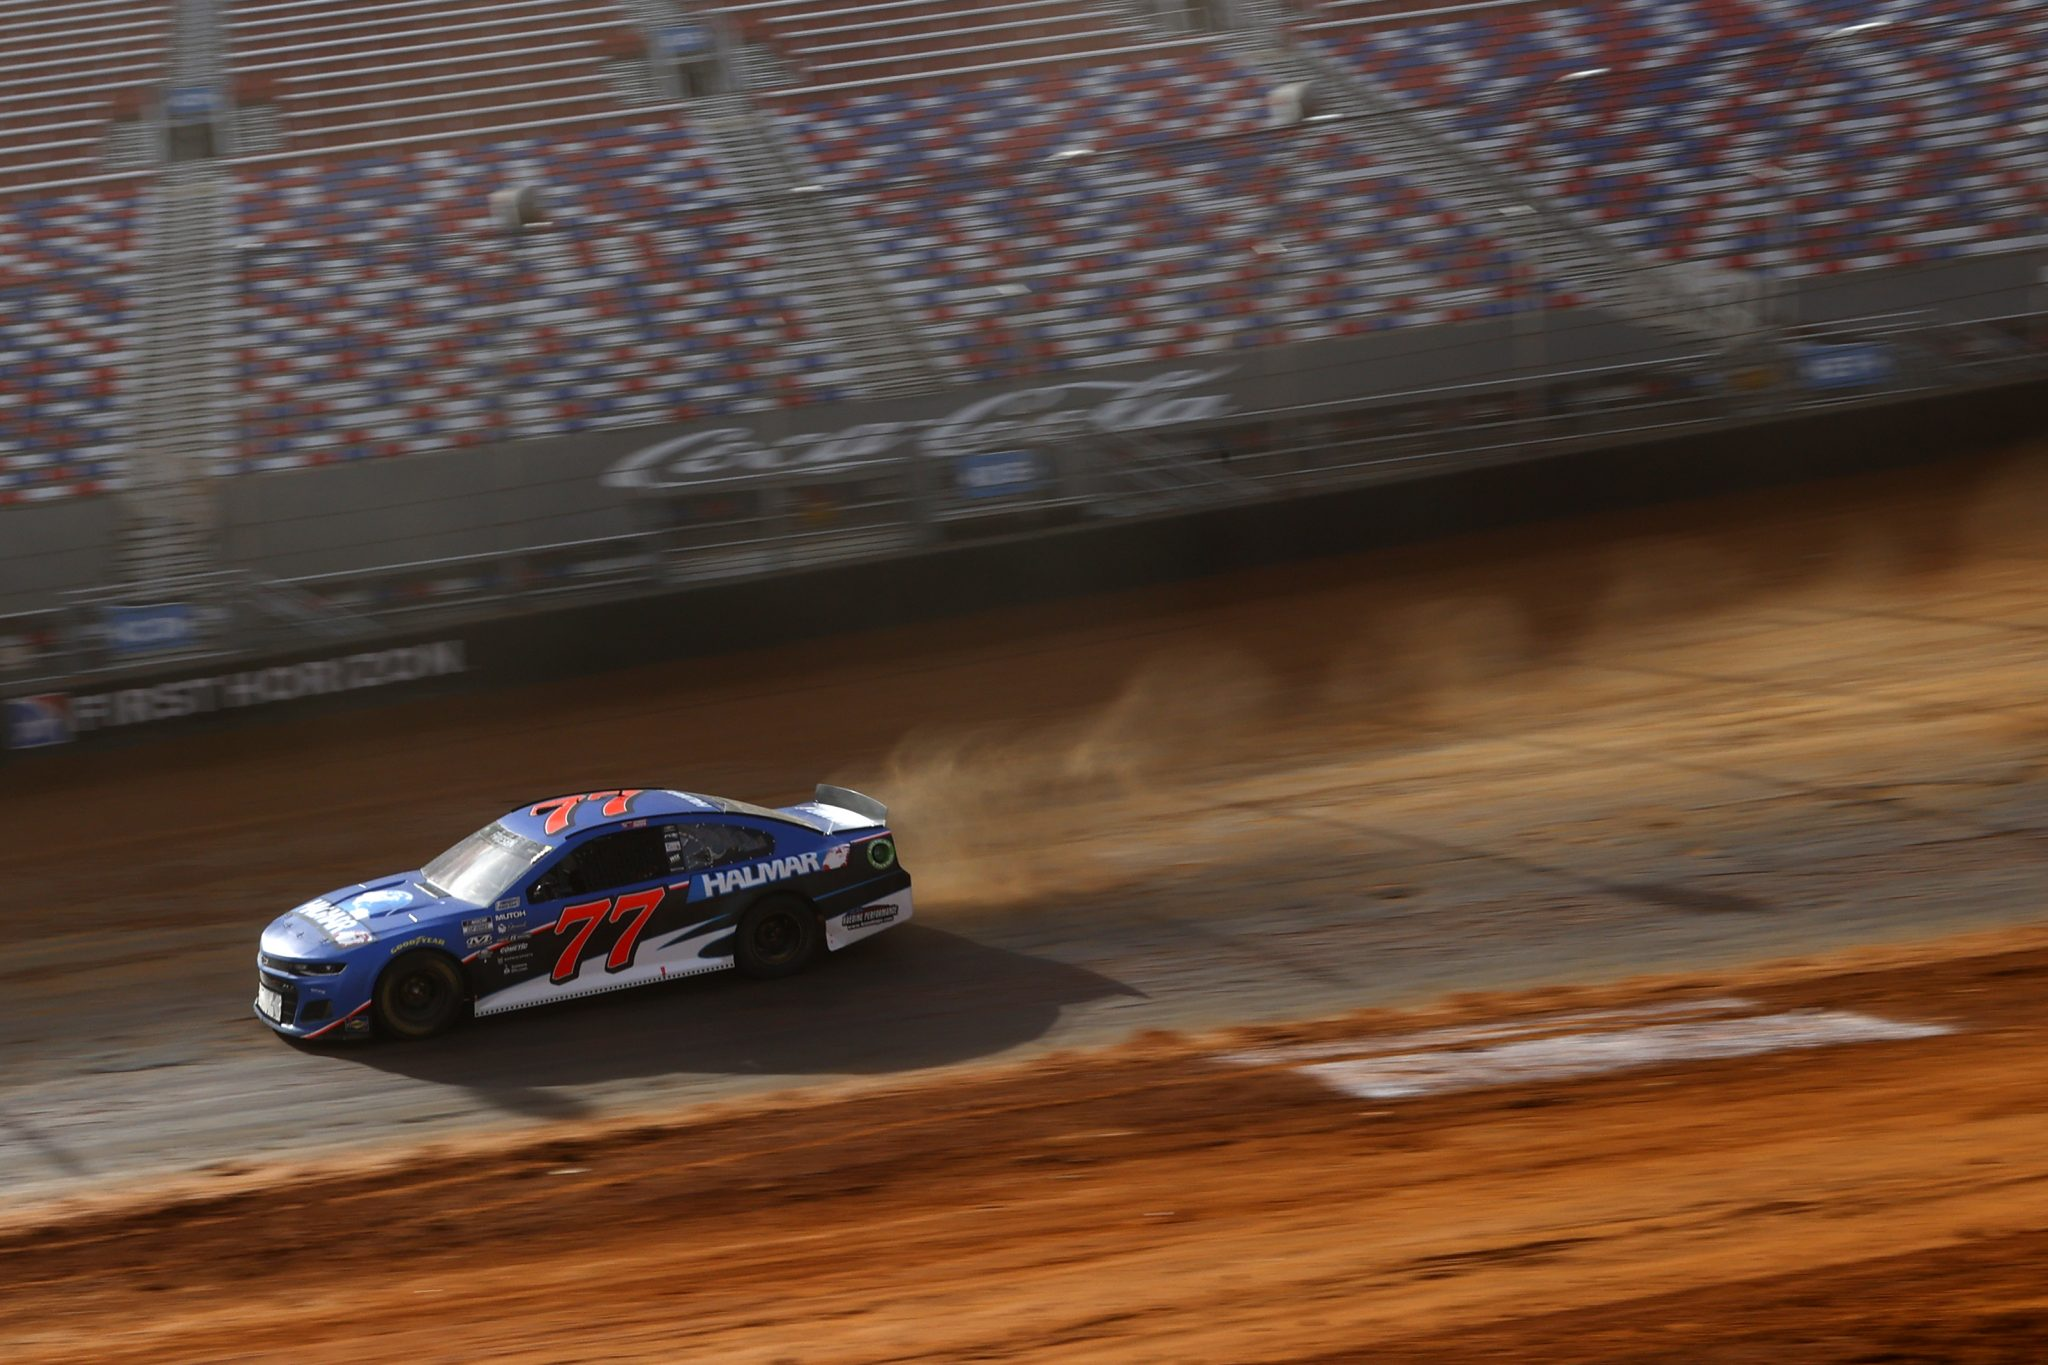 BRISTOL, TENNESSEE - MARCH 26: Stewart Friesen, driver of the #77 Halmar International Chevrolet, drives during practice for the NASCAR Cup Series Food City Dirt Race at Bristol Motor Speedway on March 26, 2021 in Bristol, Tennessee. (Photo by Chris Graythen/Getty Images) | Getty Images